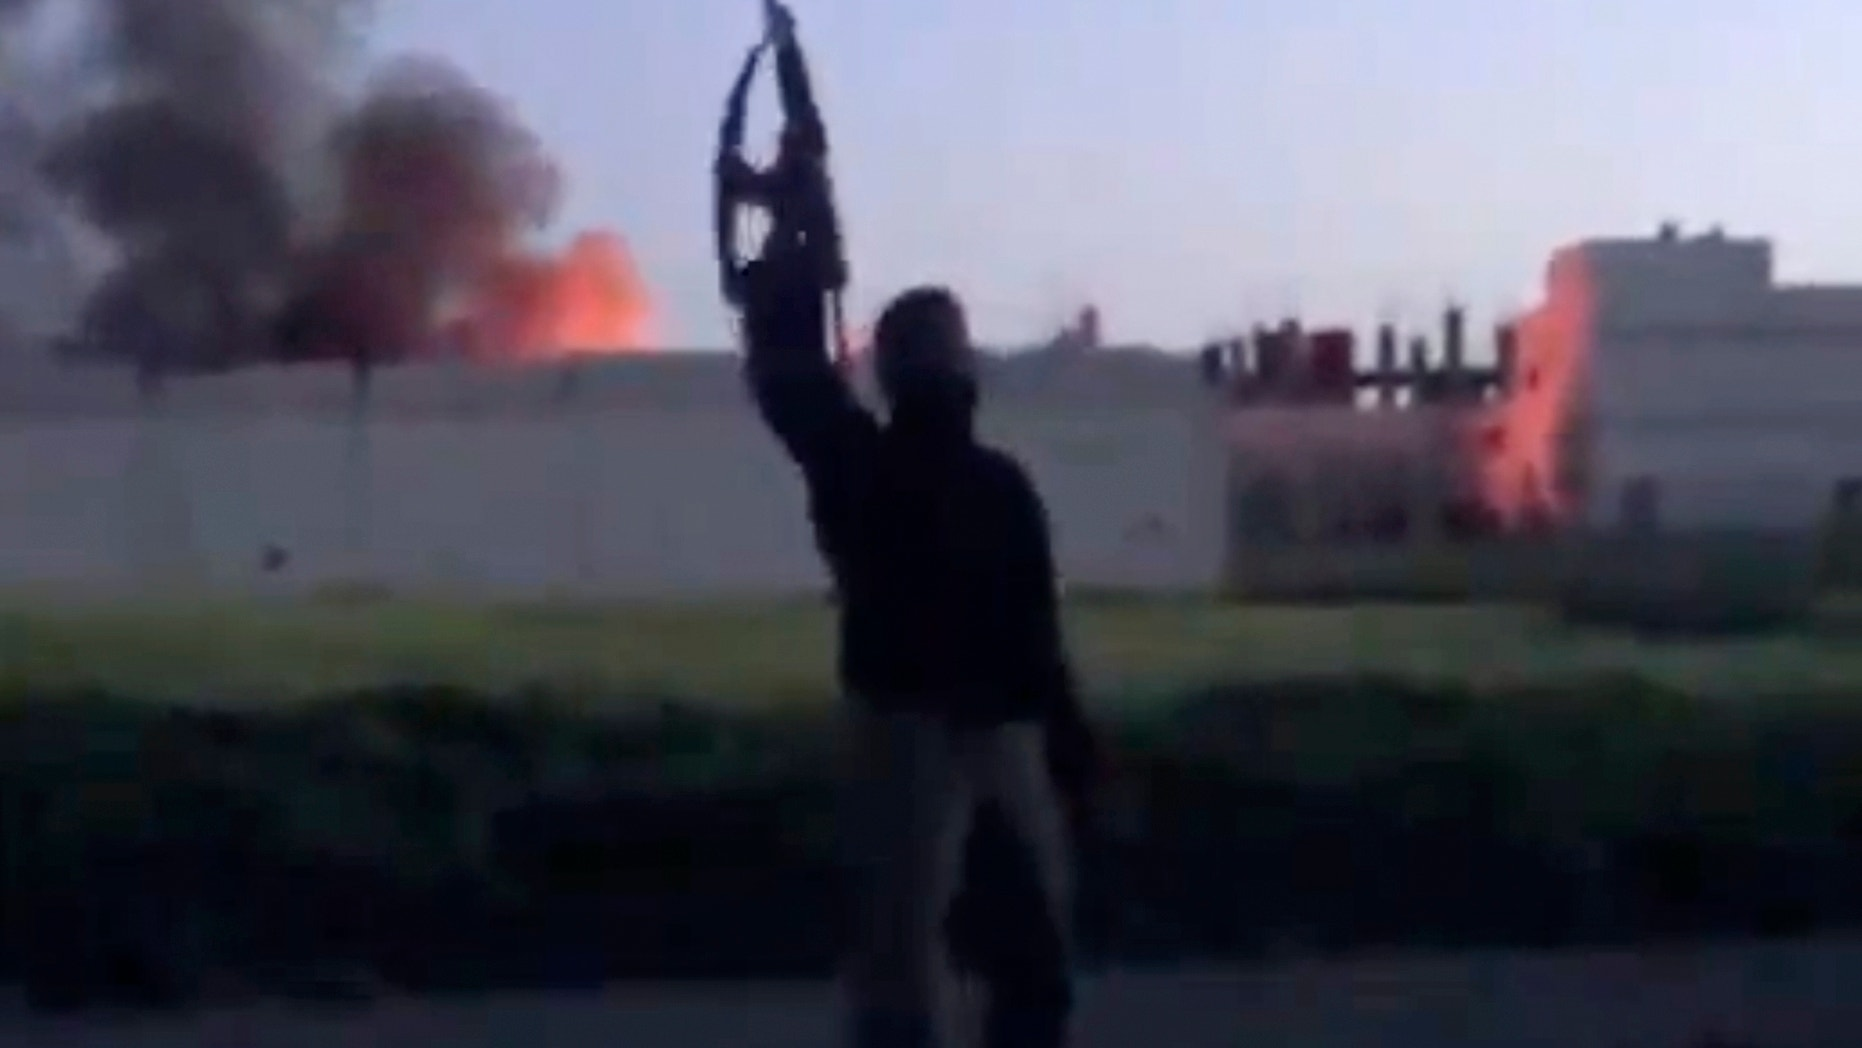 March 28, 2013 - Image taken from video shows a building at the Syrian government checkpoint on fire, in Dael less than 10 miles from the Jordanian border in Daraa province, Syria.